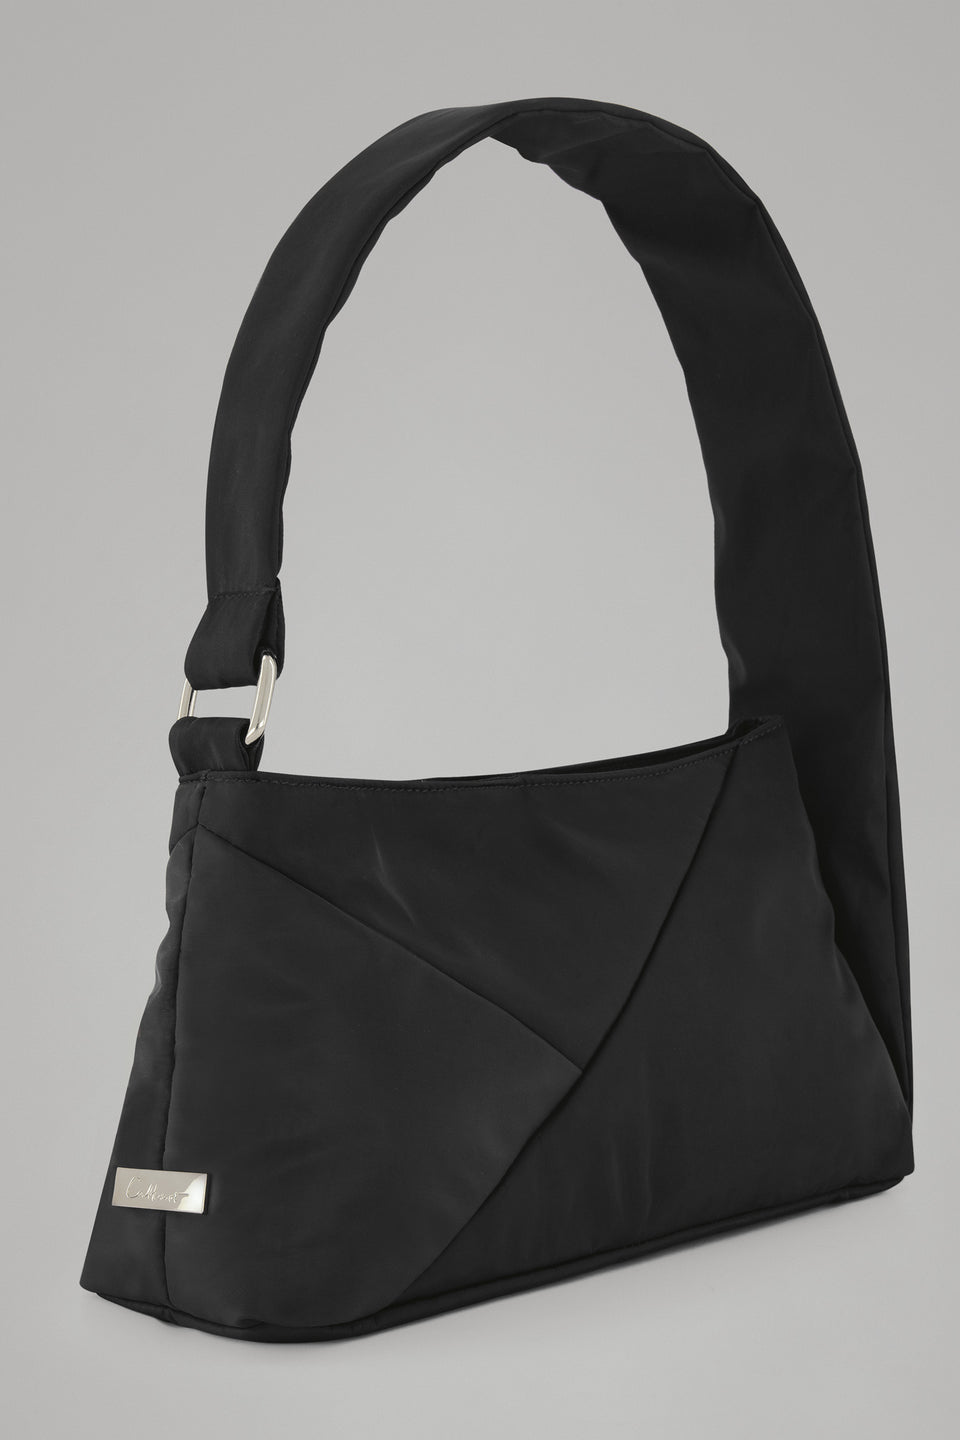 Cathari Puff Bag Essential Black